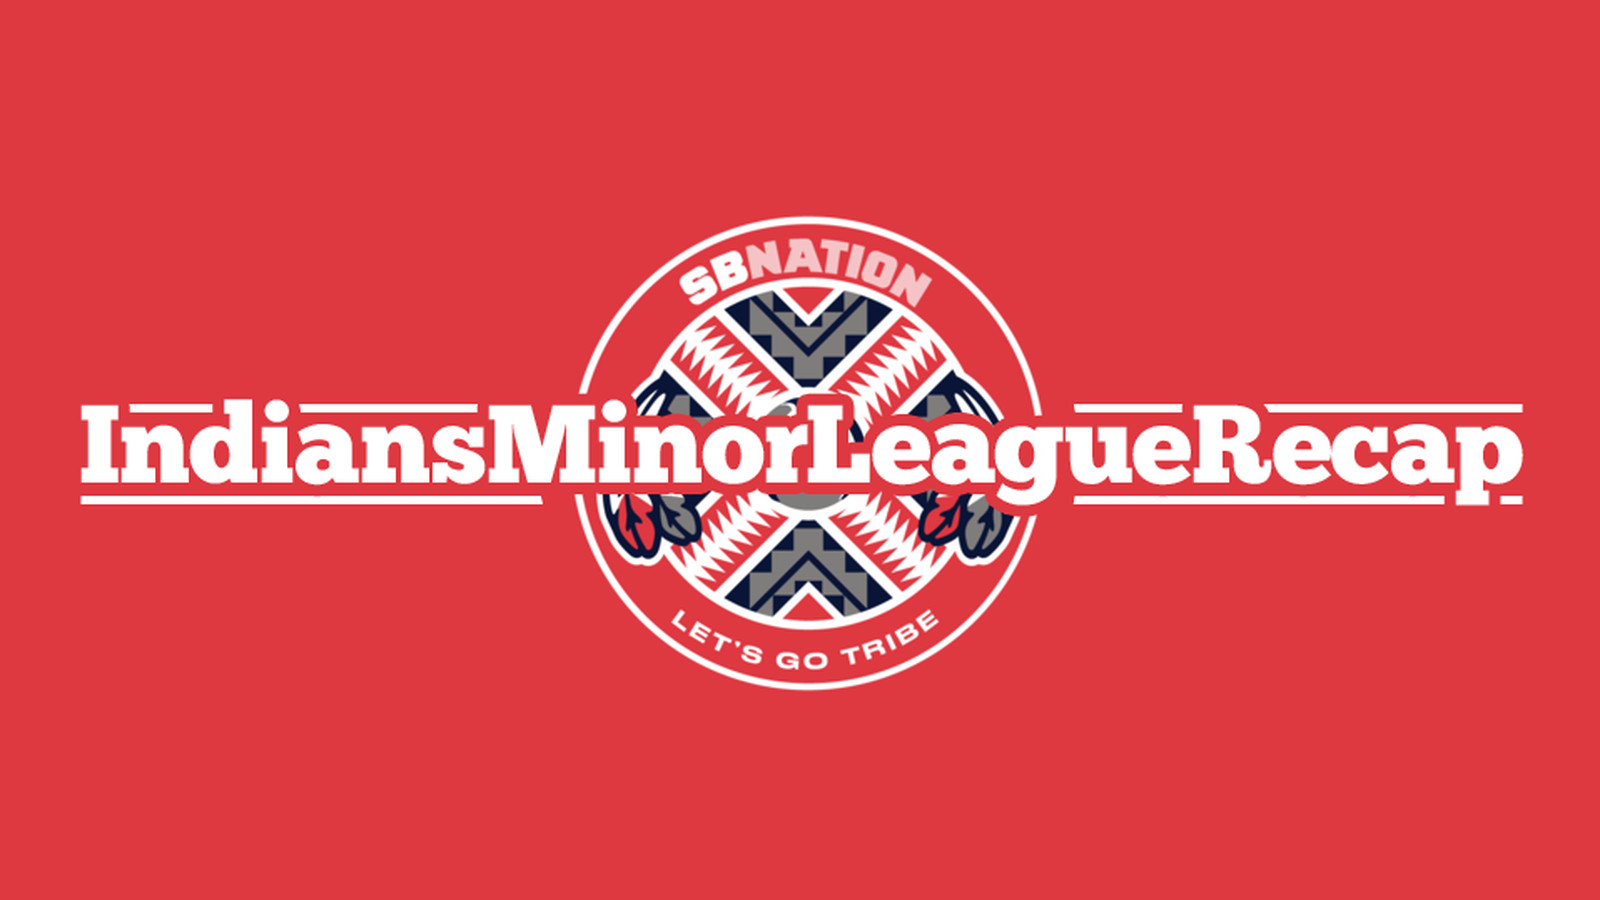 Lgt_minor_leagues_copy.0